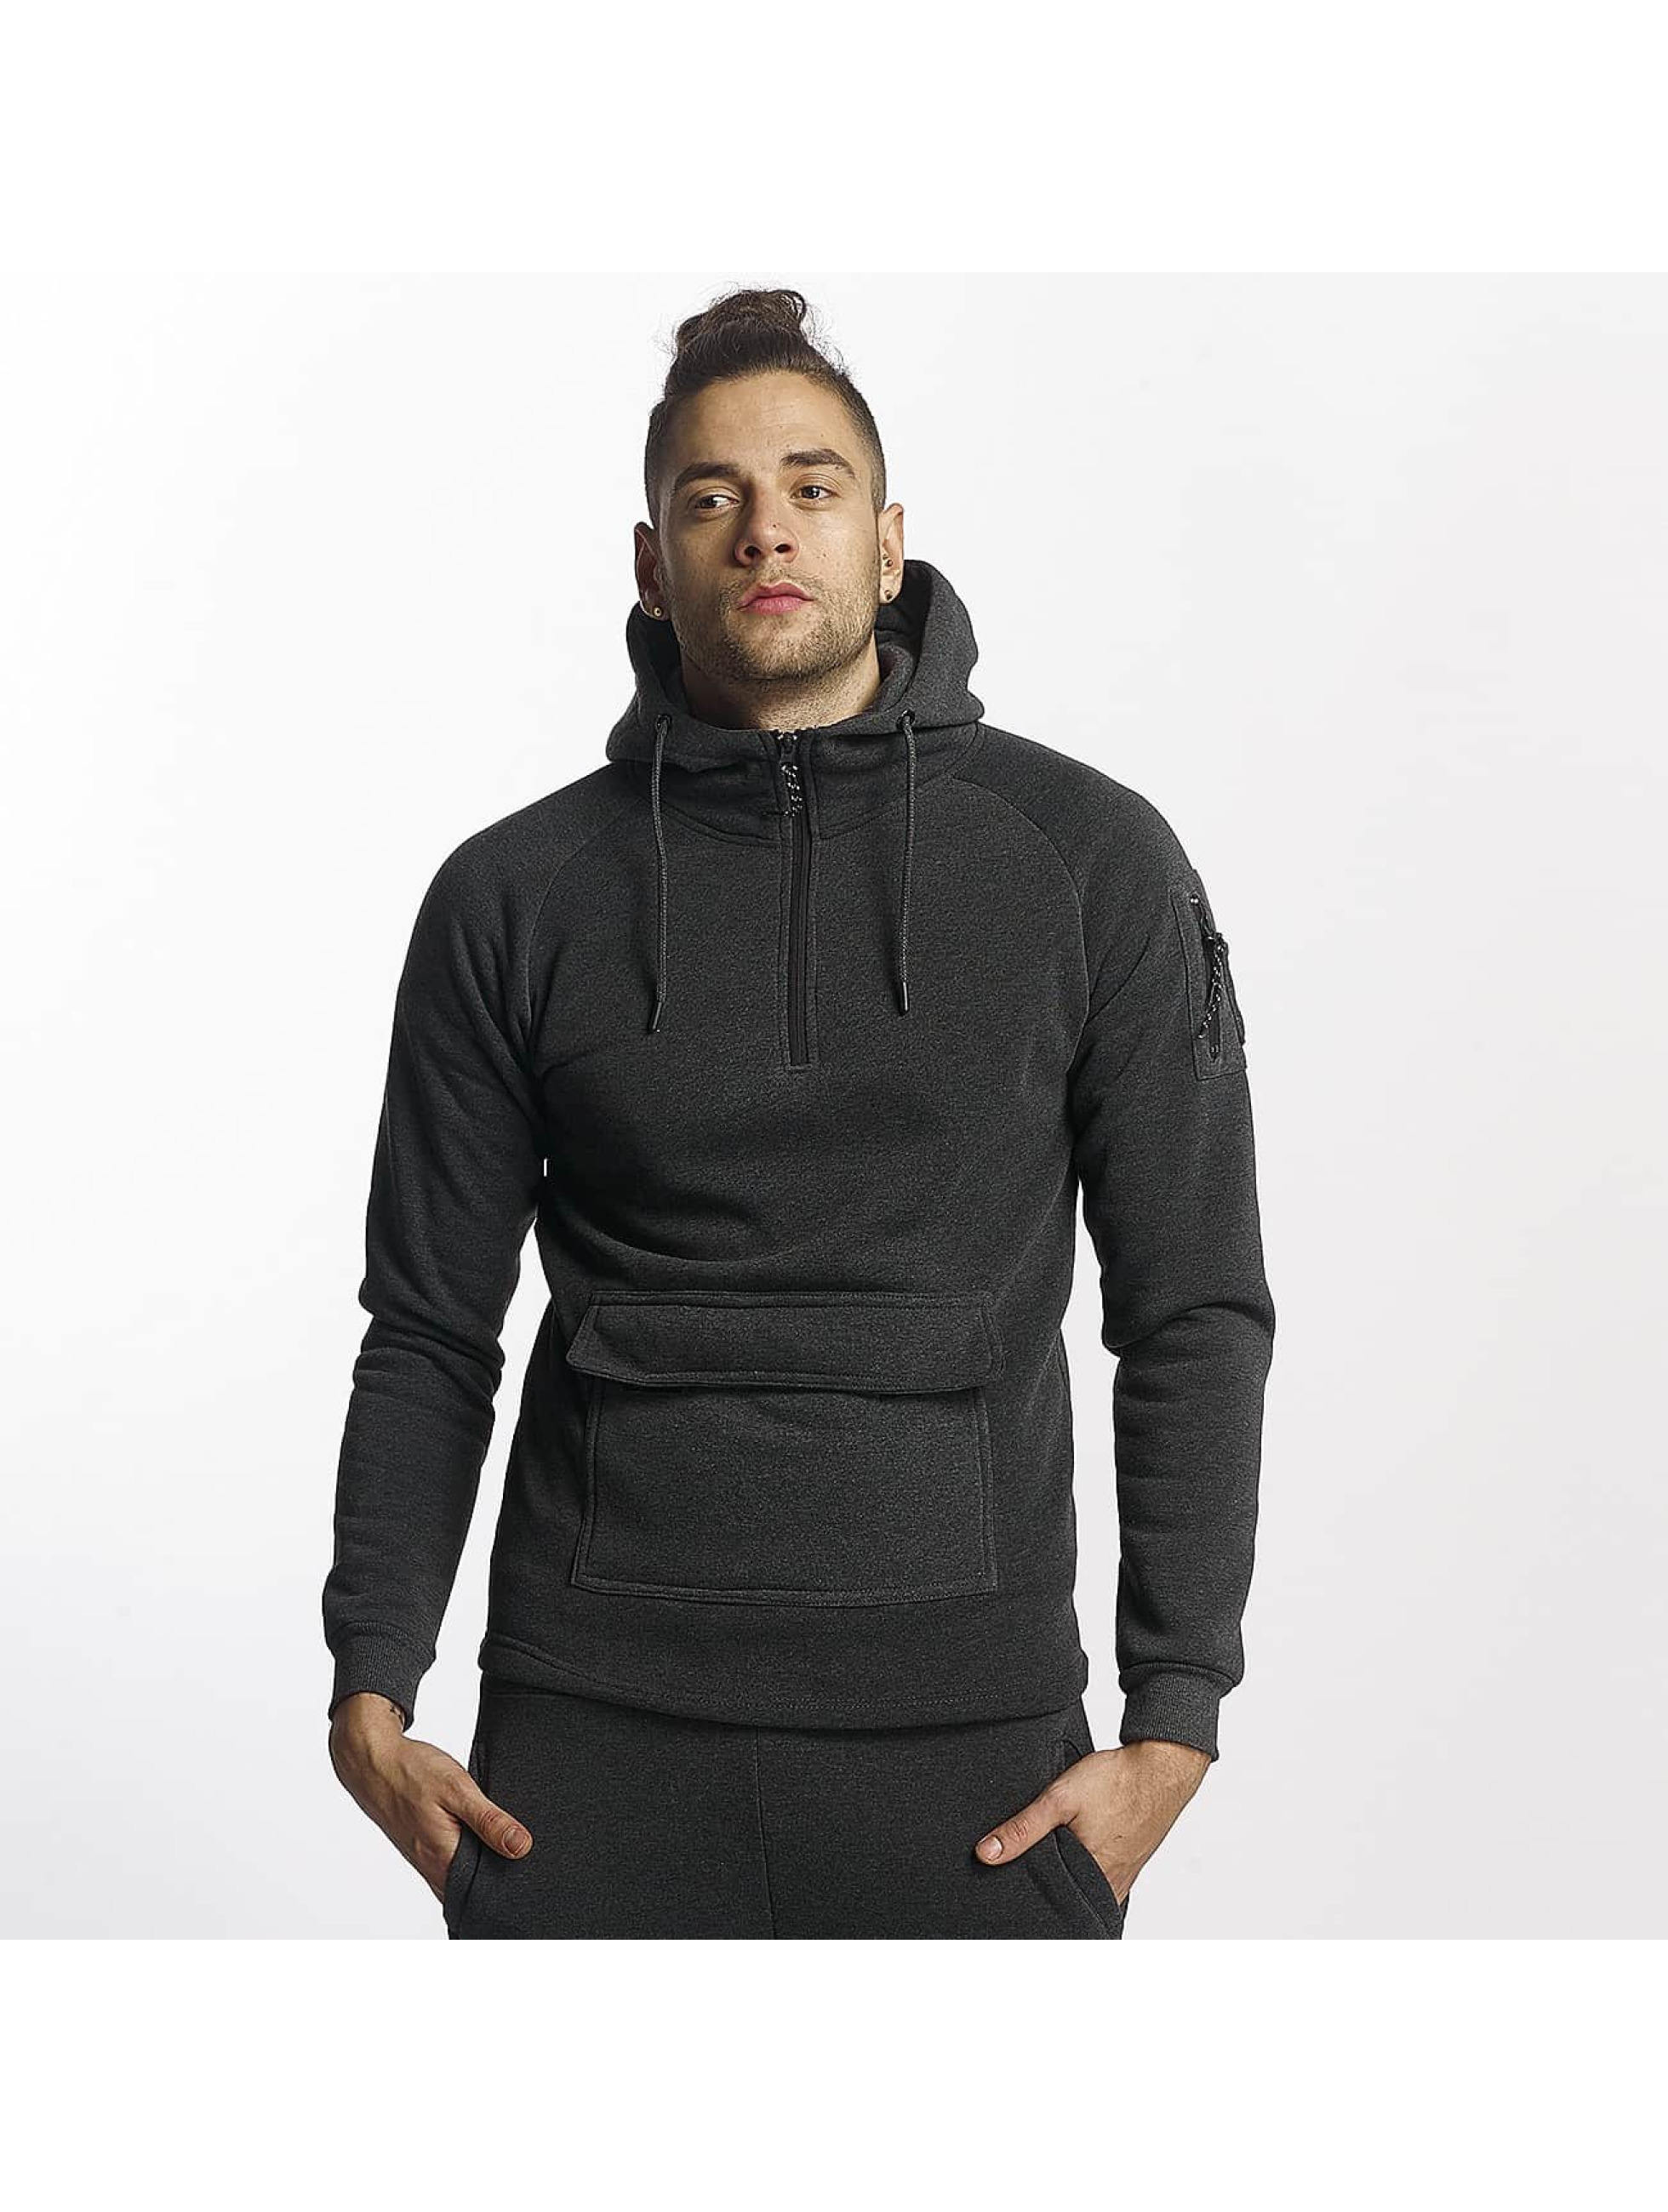 Aarhon Ensemble & Survêtement Aarhon Sweat gris